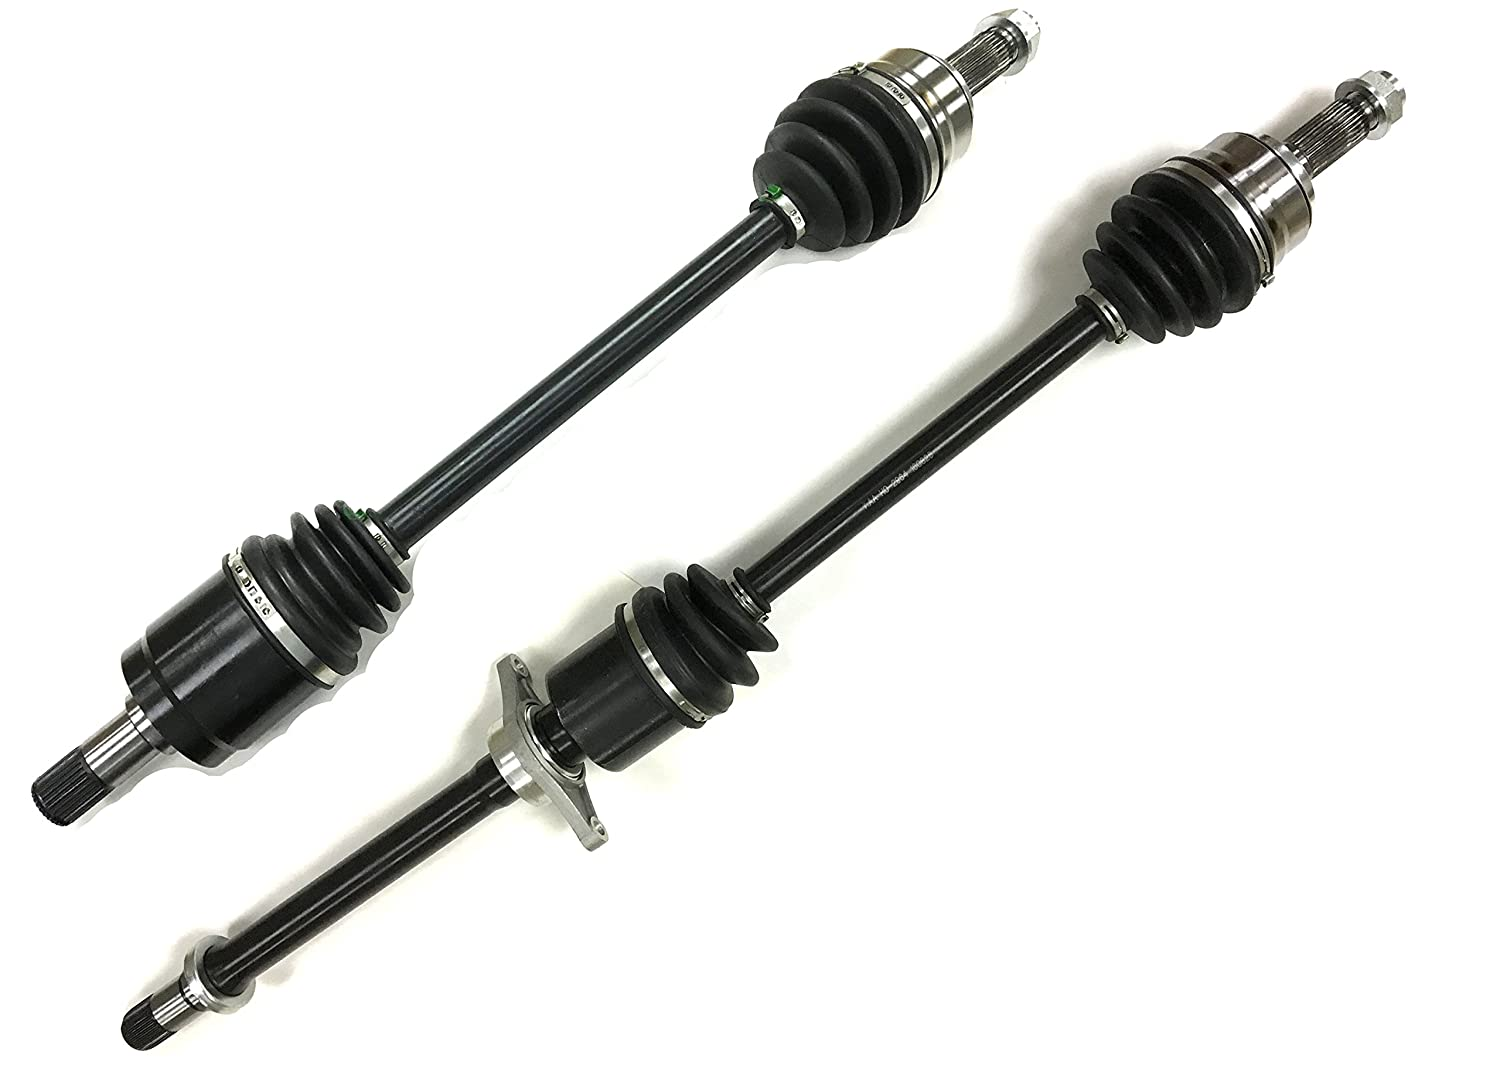 DTA DT1296129621 Front Driver and Passenger Side Premium CV Axles Will NOT fit Touring Model EX Fits 2011-2013 Honda Odyssey LX Pair or EXL Models Only New Drive Axle Assemblies - 2 pcs